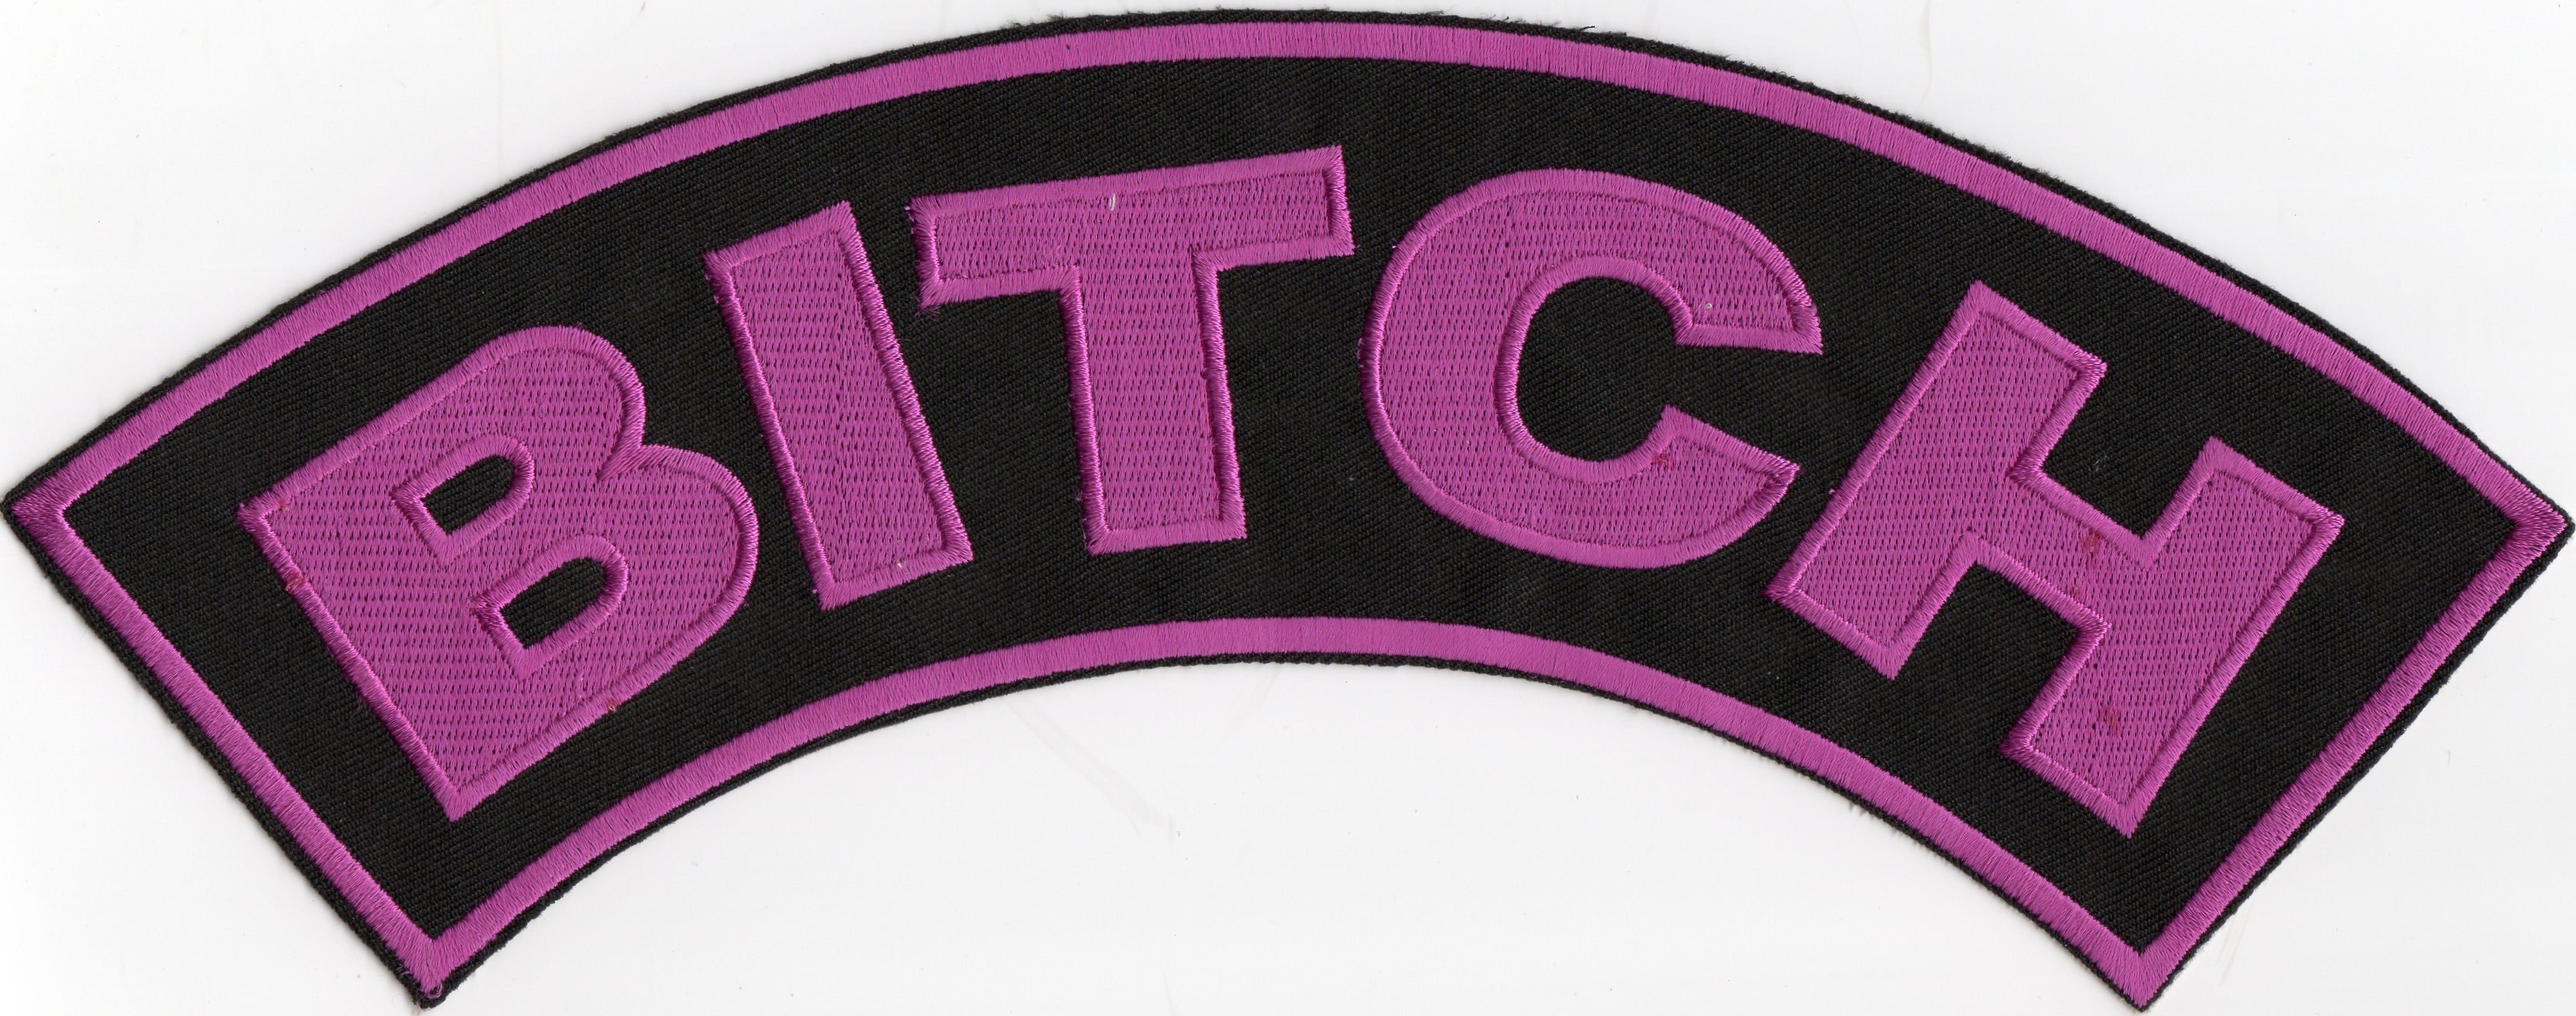 "BITCHTop Rocker Girl's Biker Patch11"" X 2 3/4 "" FREE SHIPPING - Product Image"